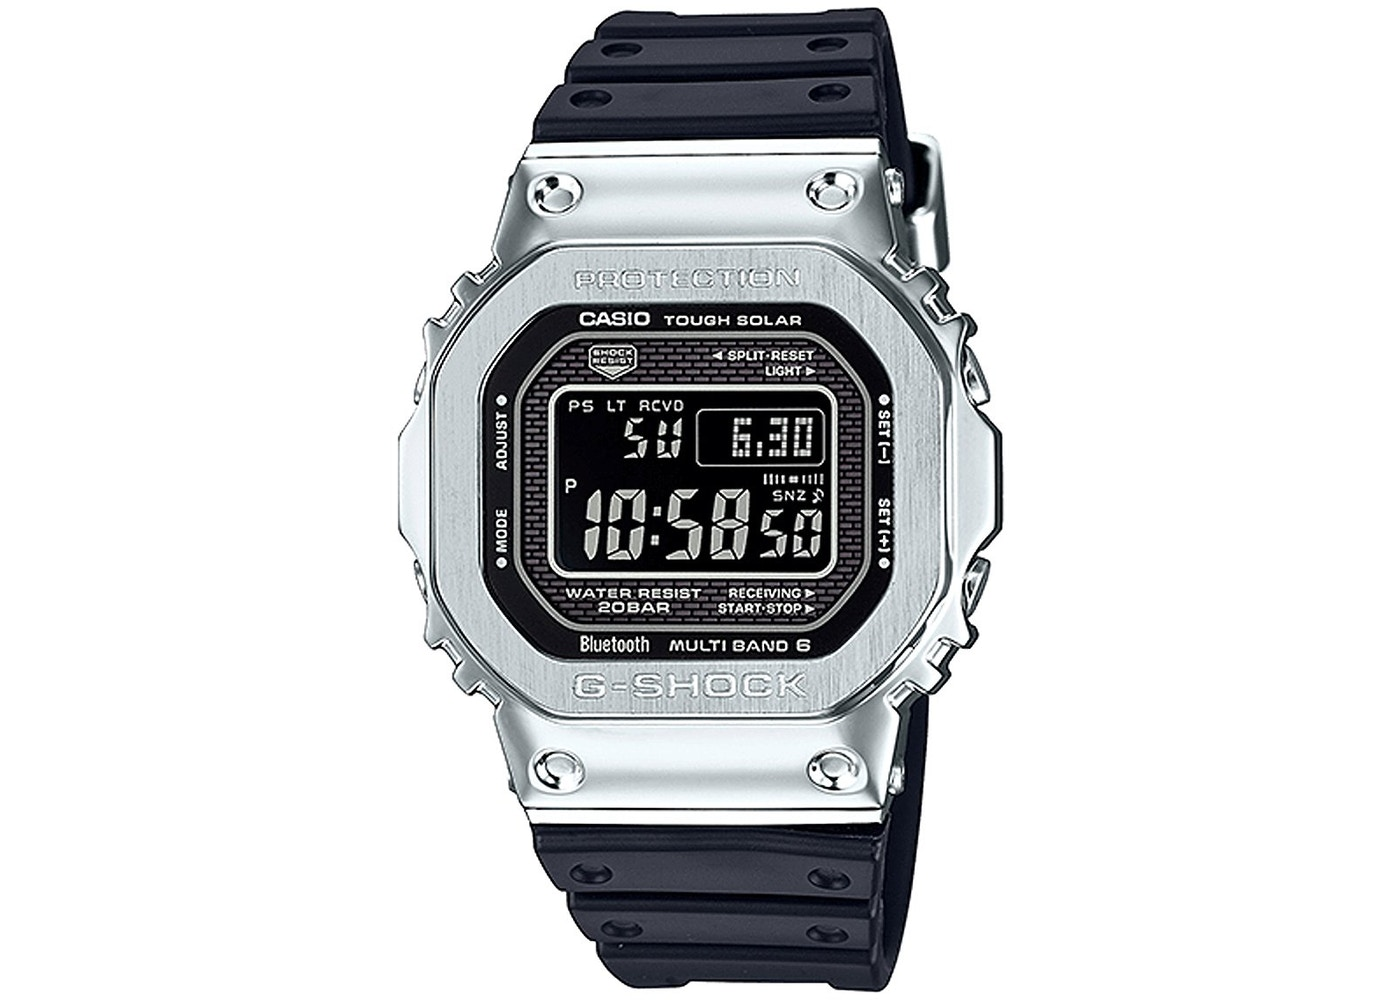 new product 92c6f 56510 Casio G-Shock GMW-B 5000-1